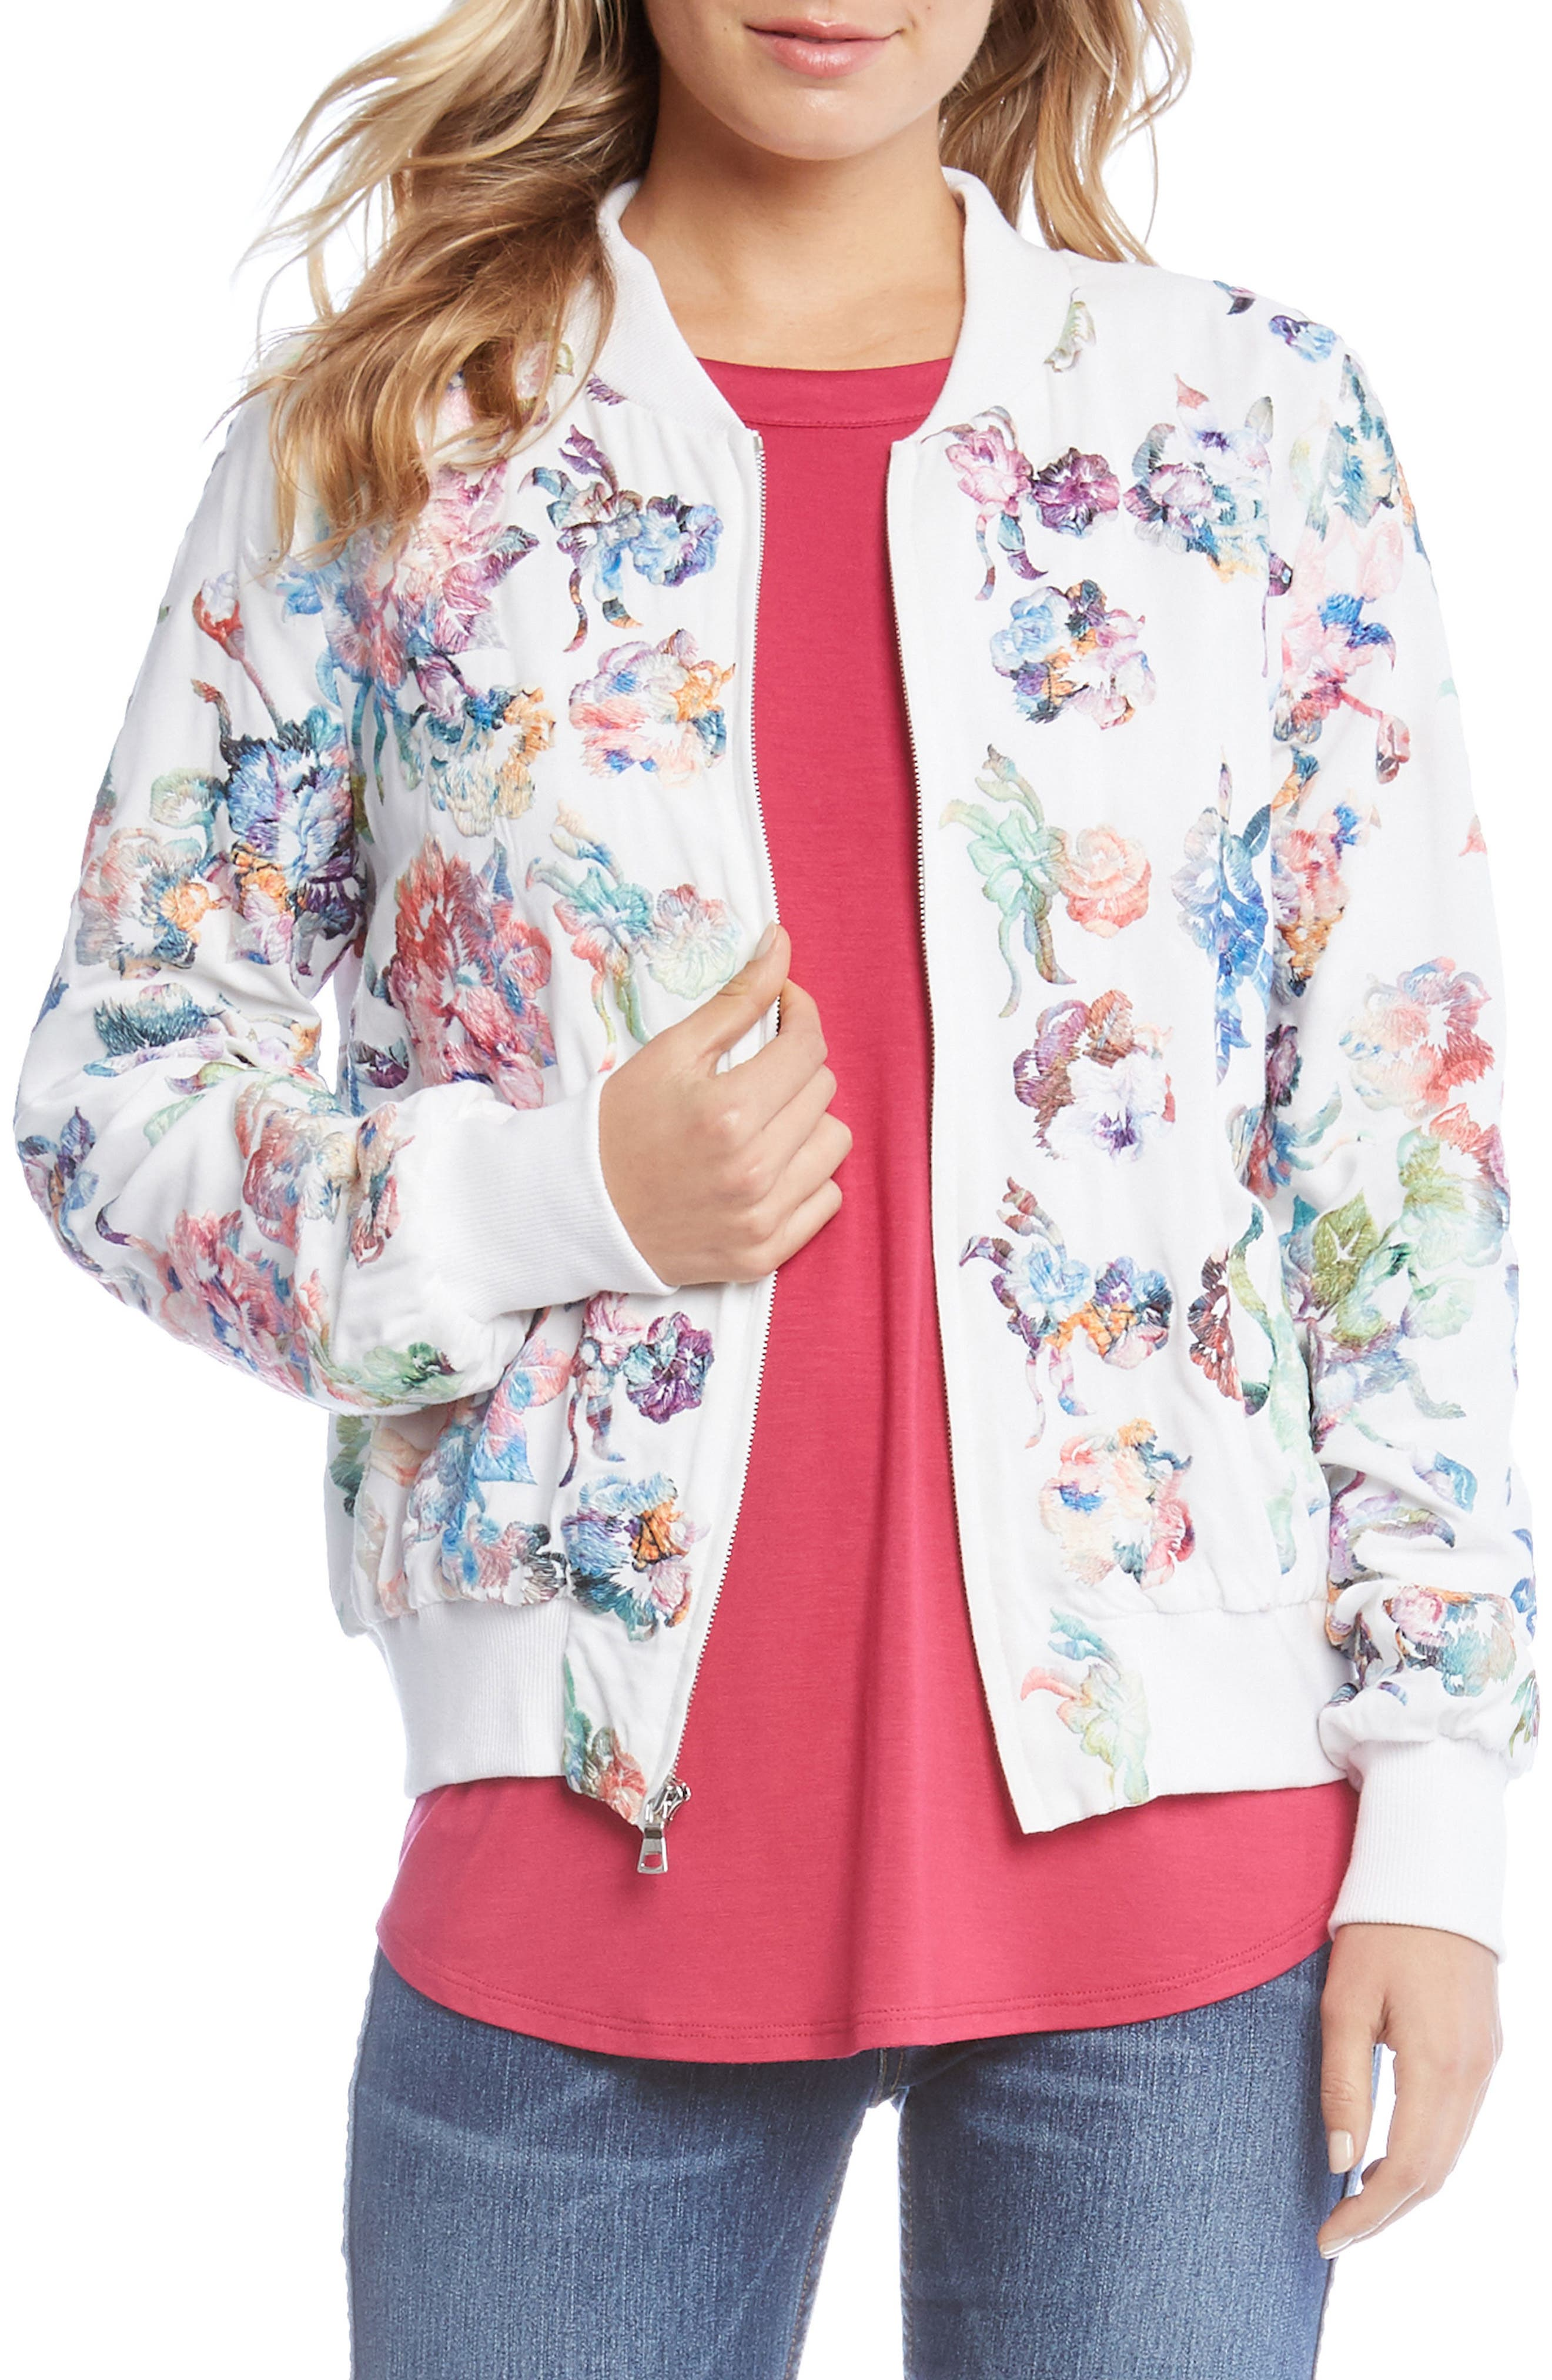 Embroidered Floral Bomber Jacket,                             Main thumbnail 1, color,                             Multi-Colored